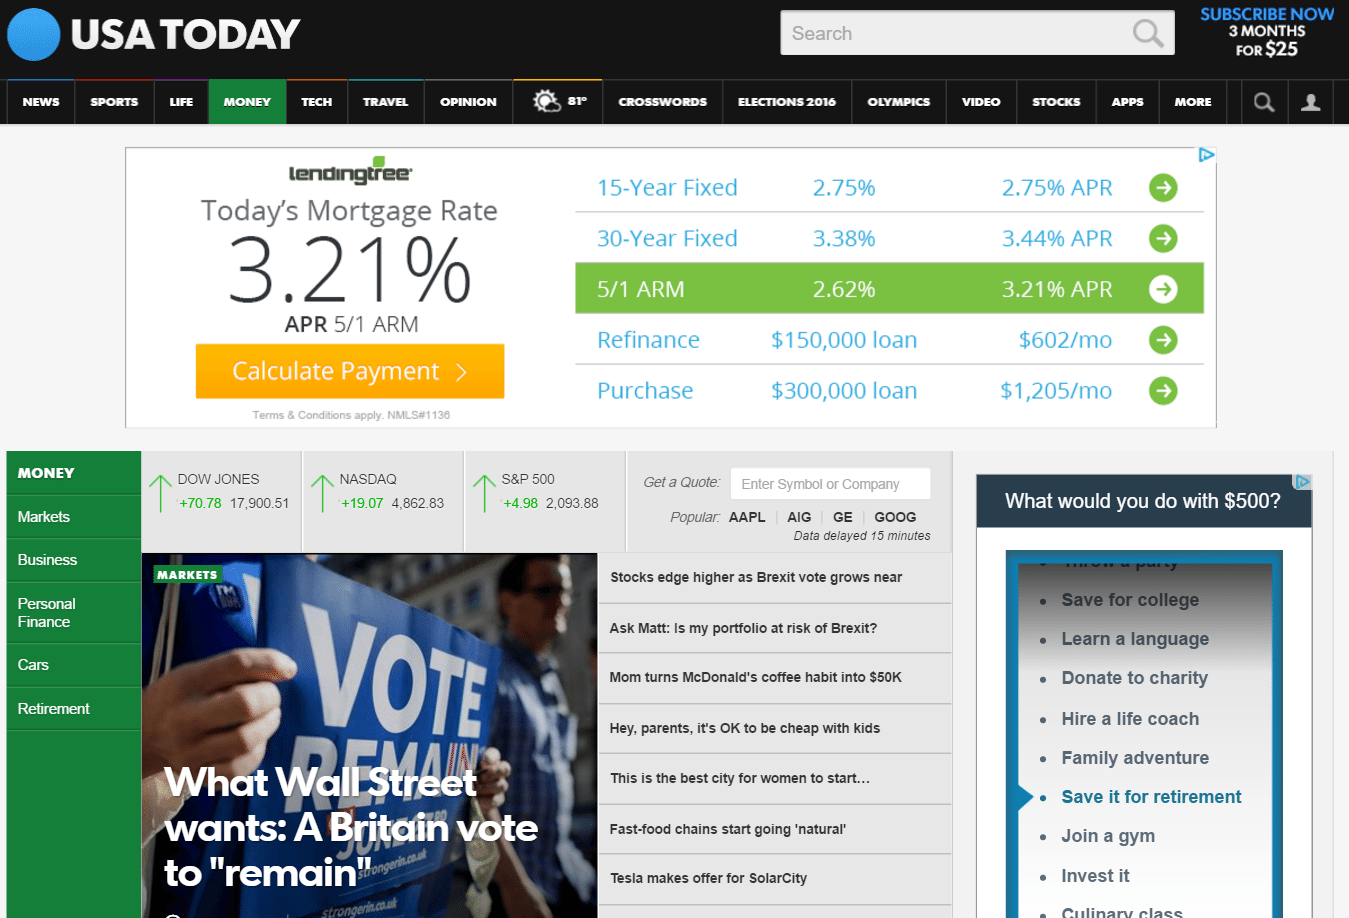 usatoday with ads